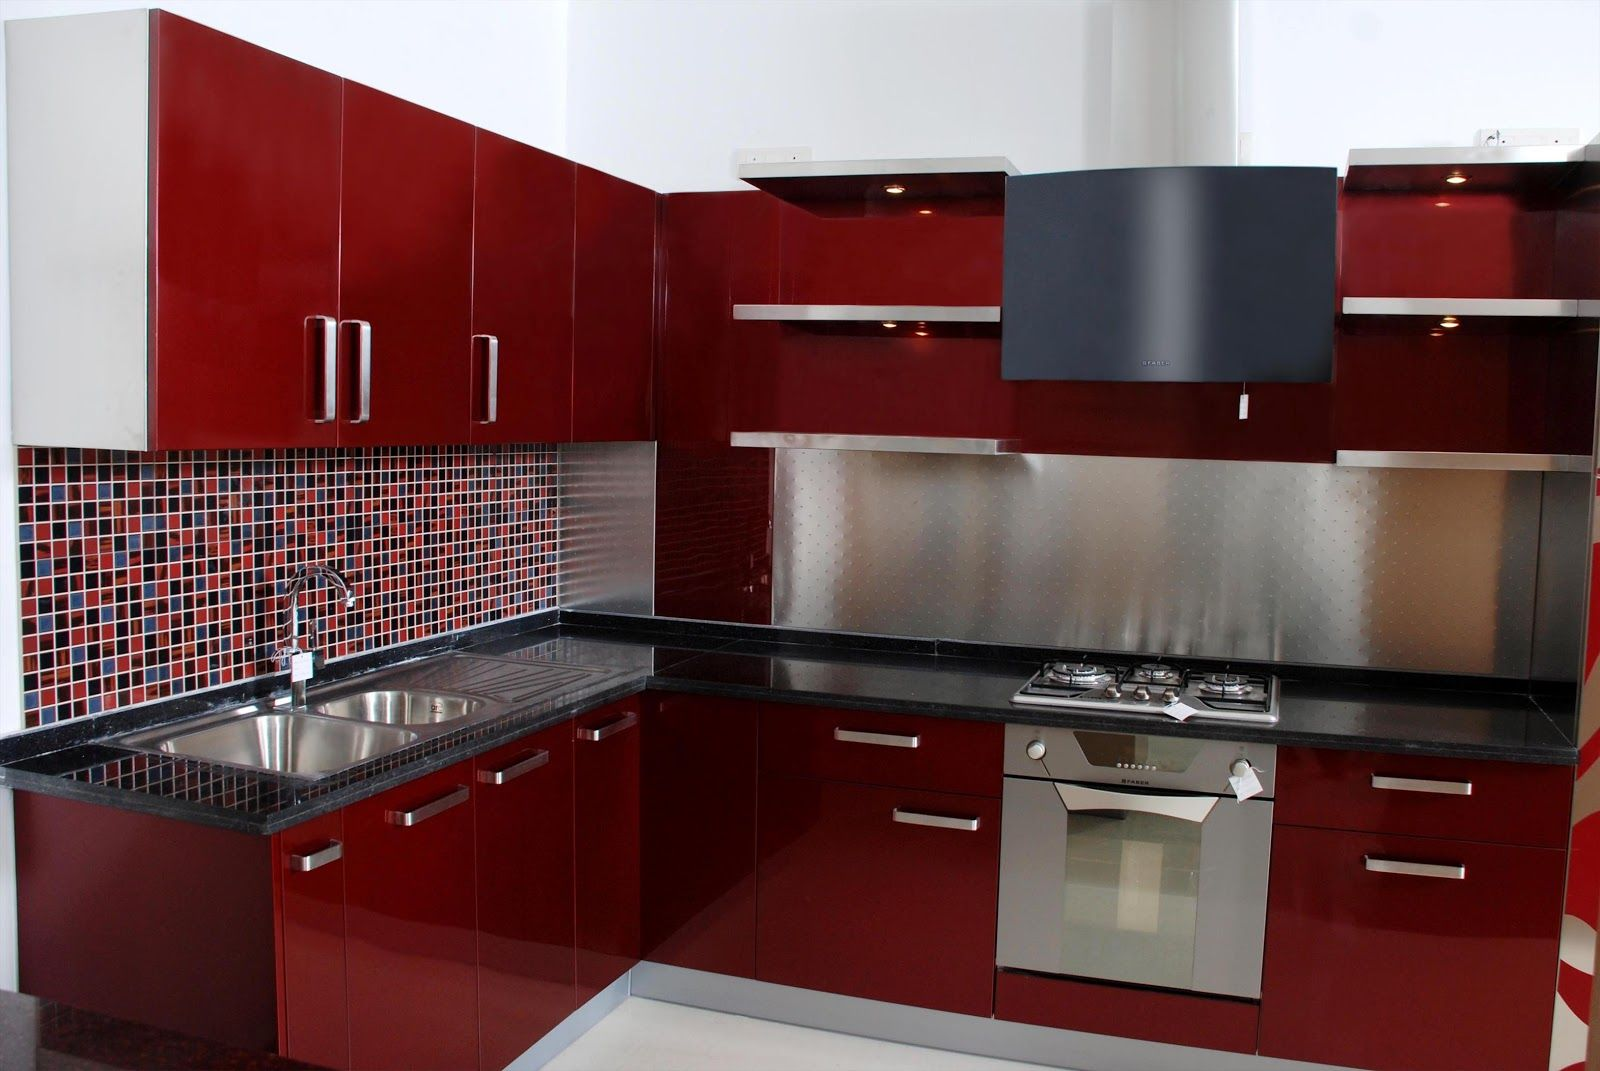 Parallel kitchen design india google search kitchen for Indian style kitchen design